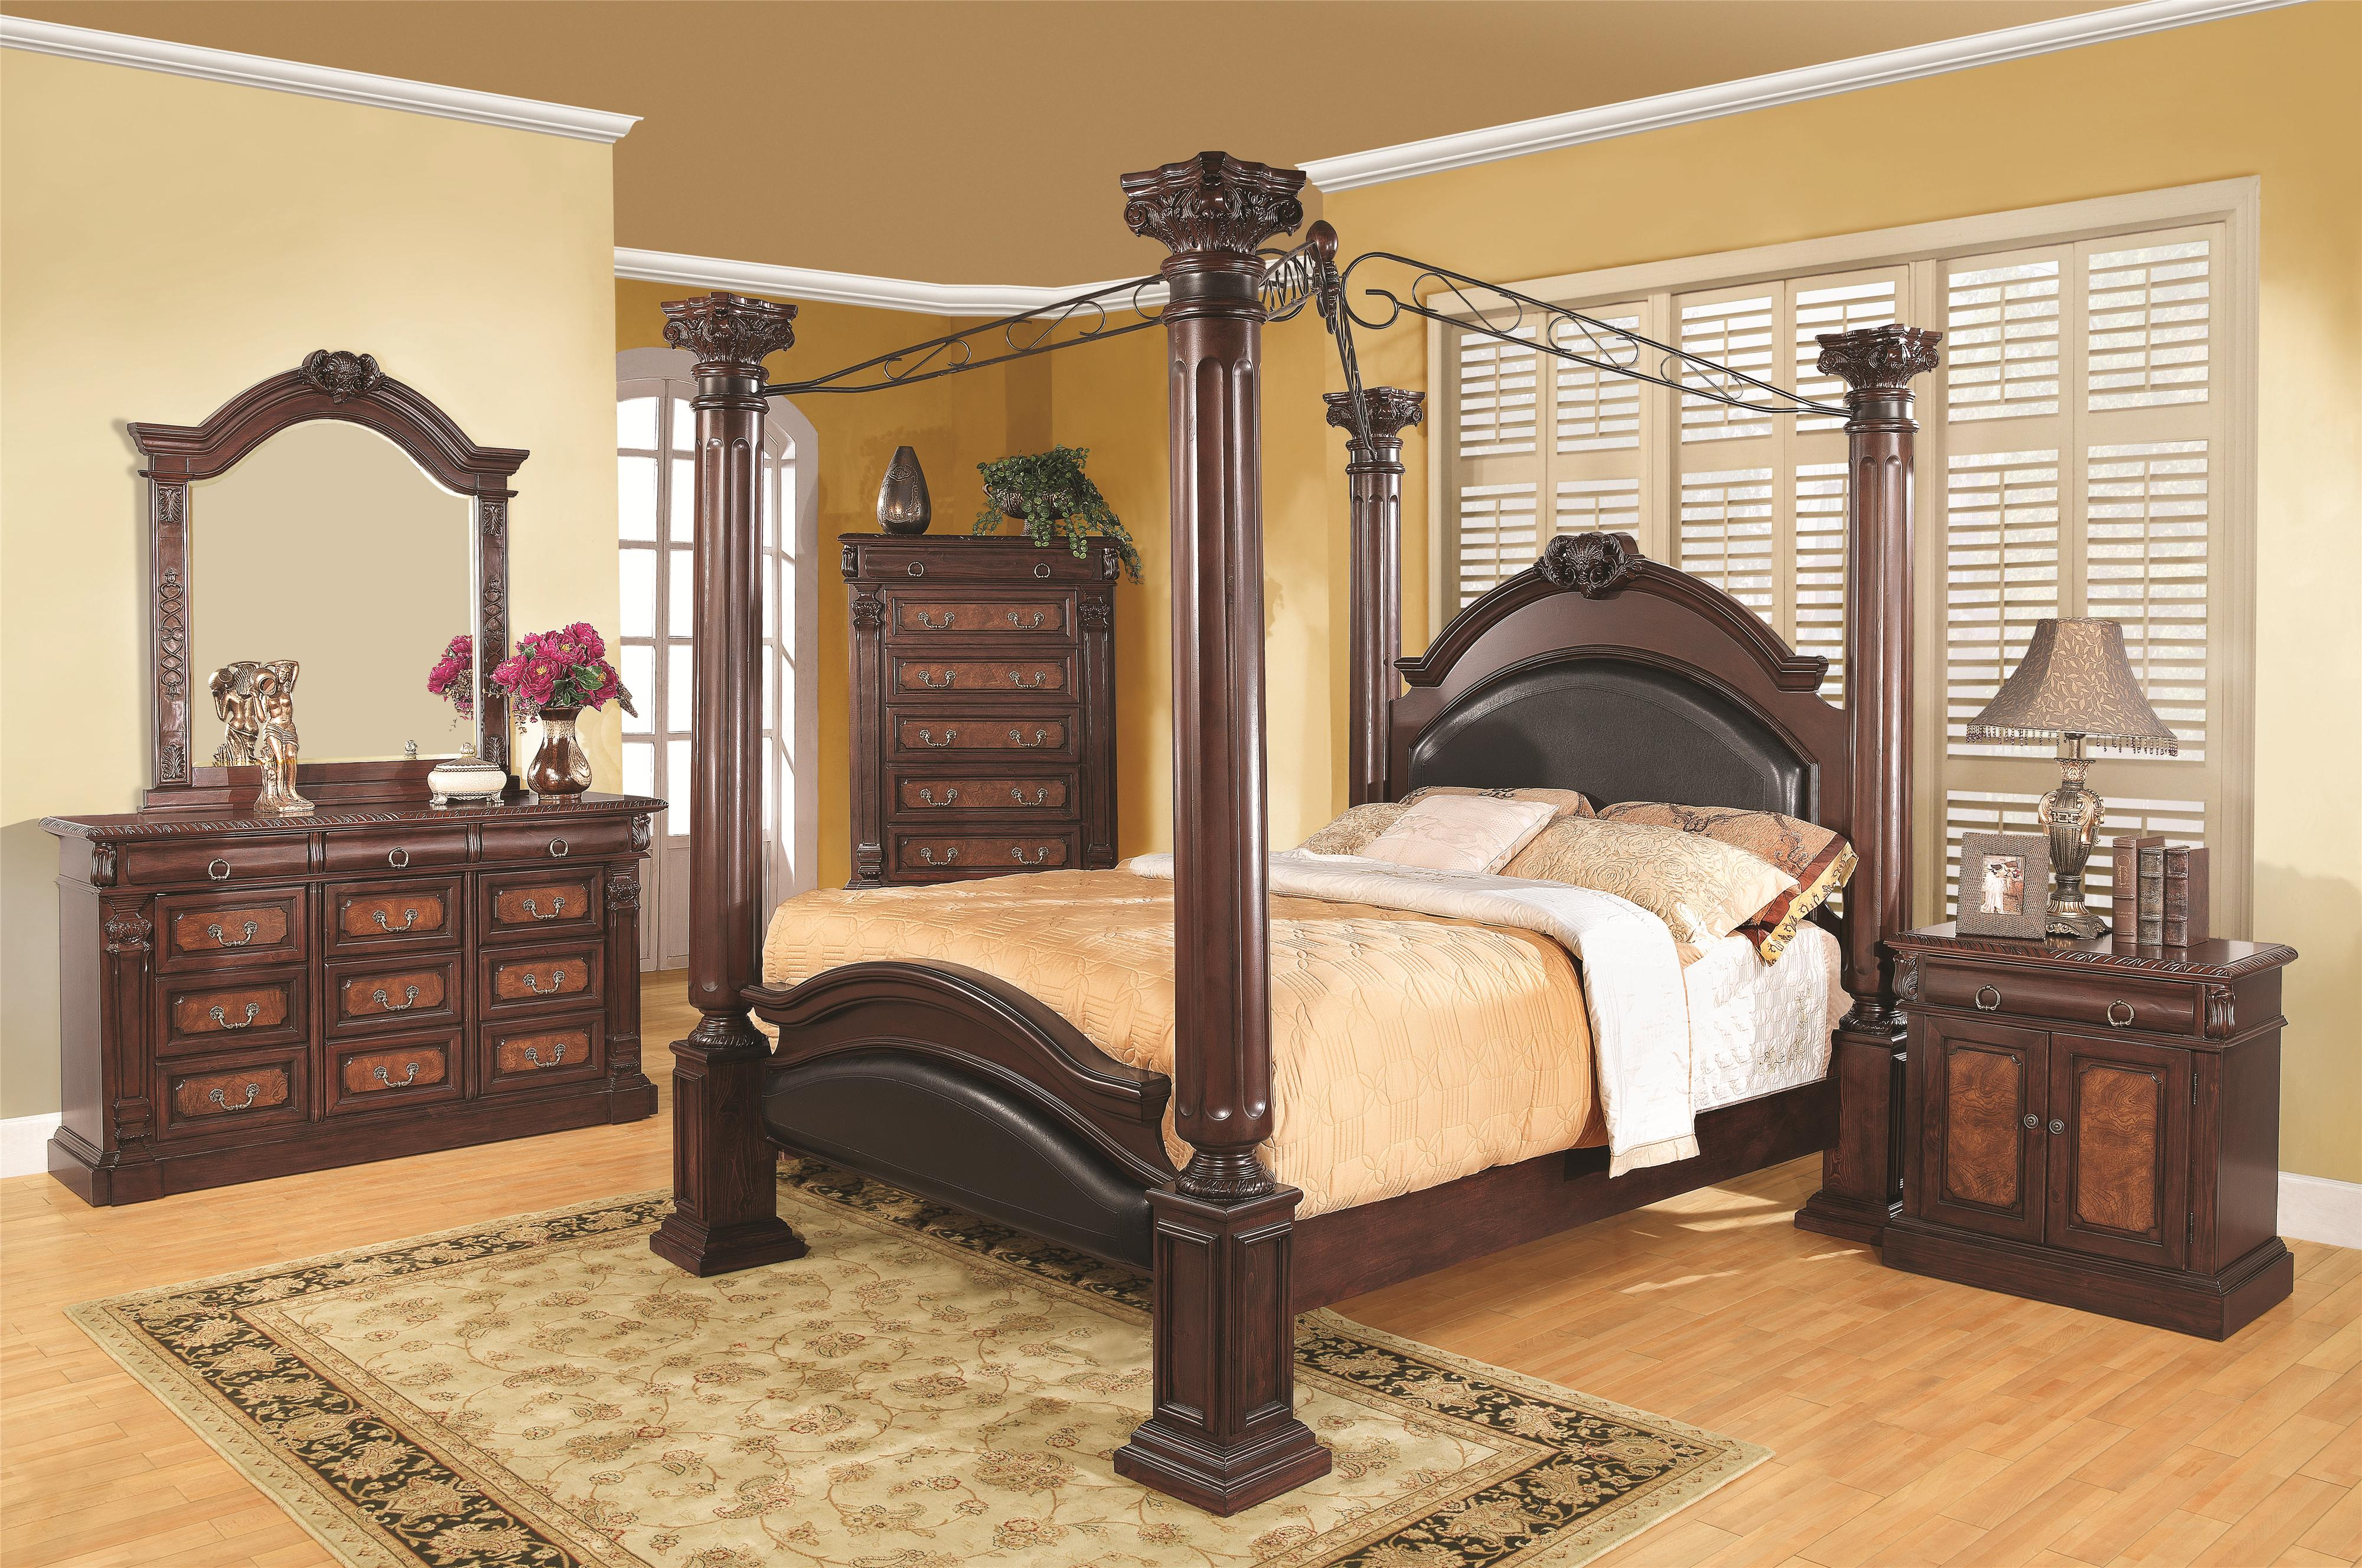 Coaster Grand Prado King Poster Bed w/ Upholstered Panels ...